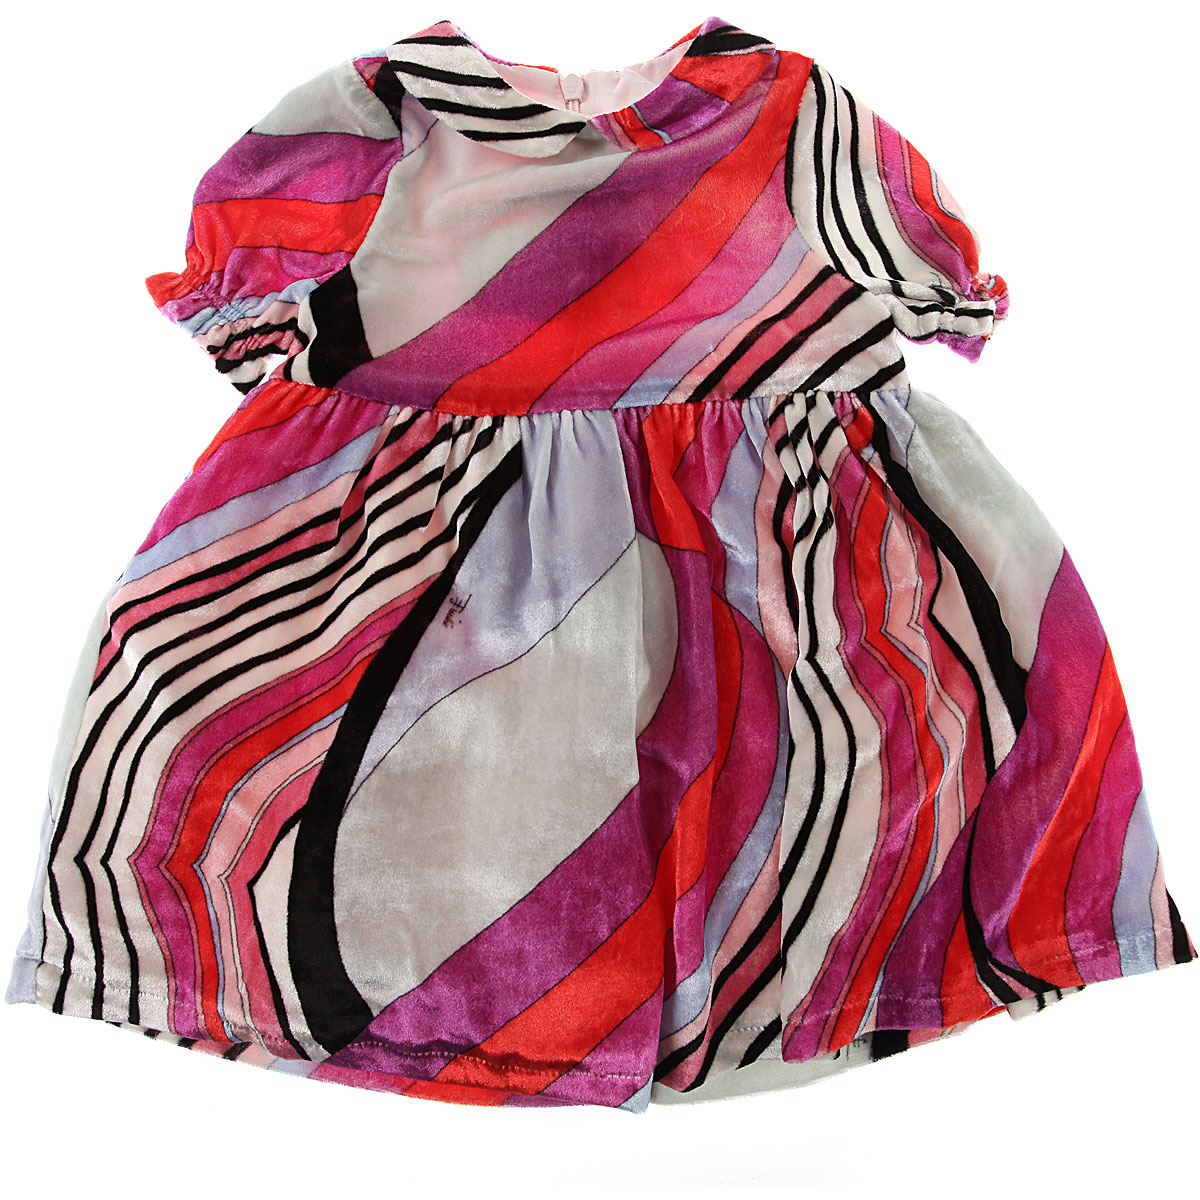 Image of Emilio Pucci Baby Dress for Girls, Red, Viscose, 2017, 12M 18M 6M 9M